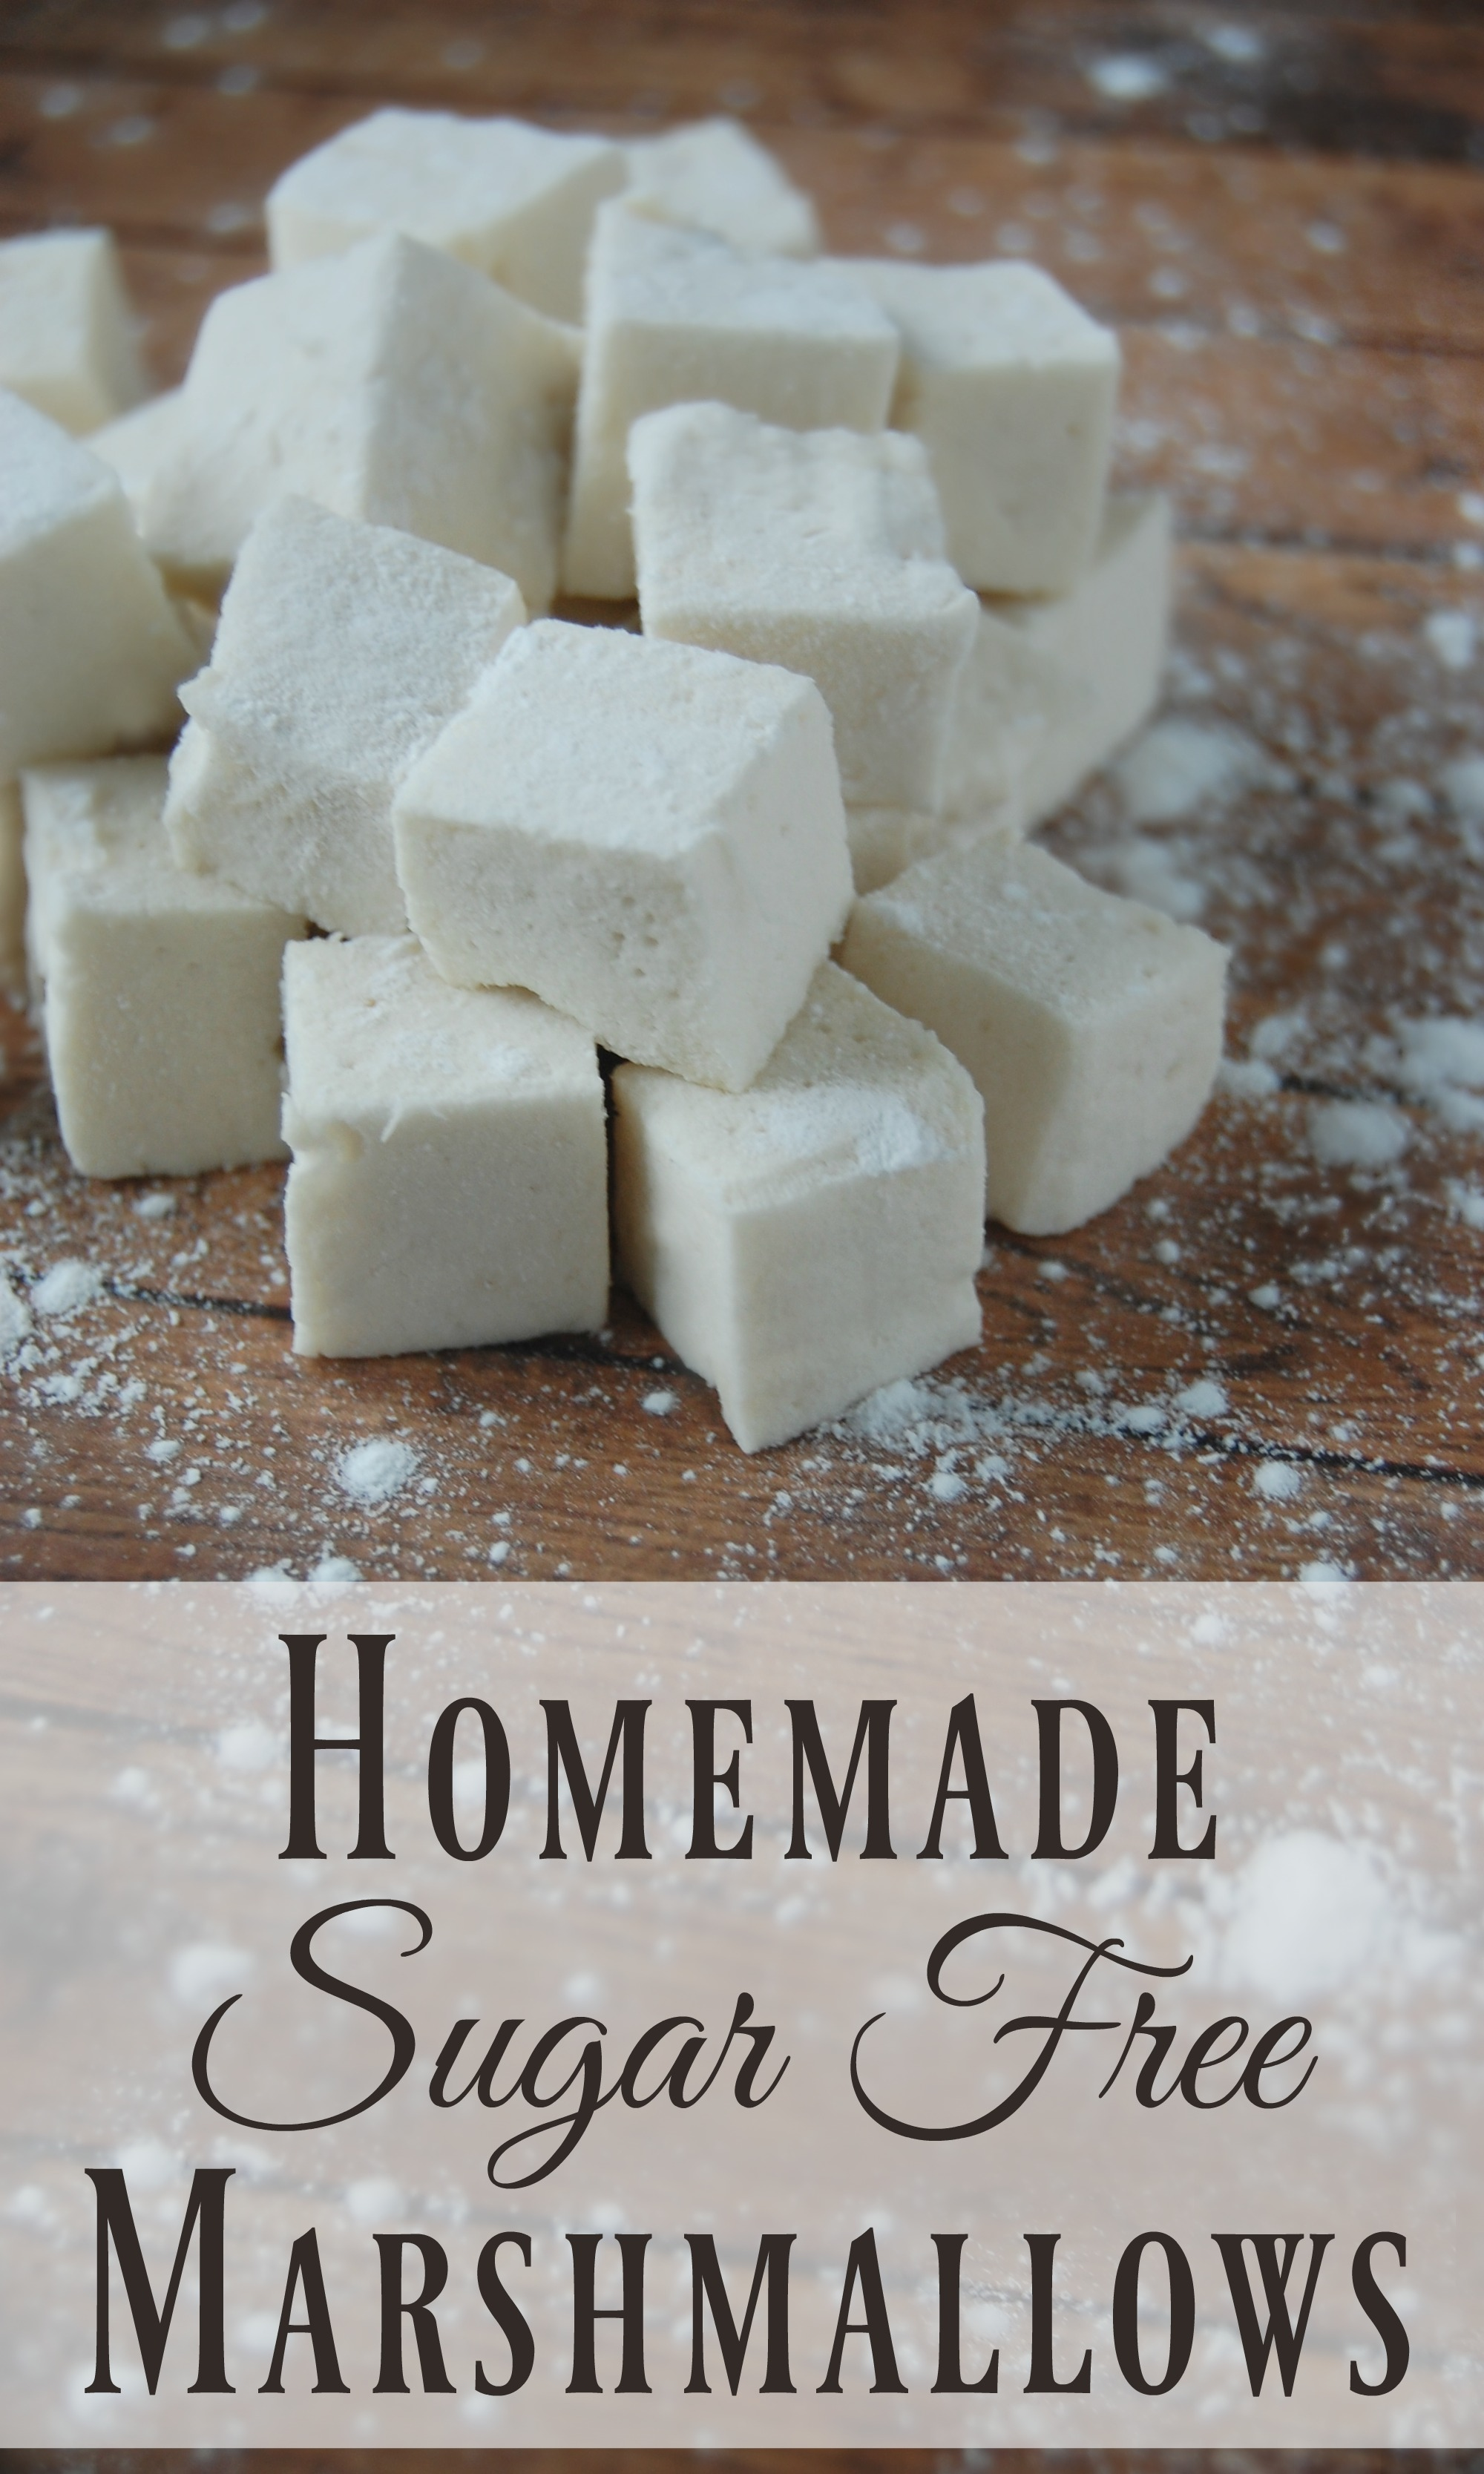 Homemade Sugar Free Marshmallows! - Where has this been all my life? No more guilt tripping over marshmallows for me! These things are practically a health food once you ditch all the yucky ingredients that most store bought marshmallows have!